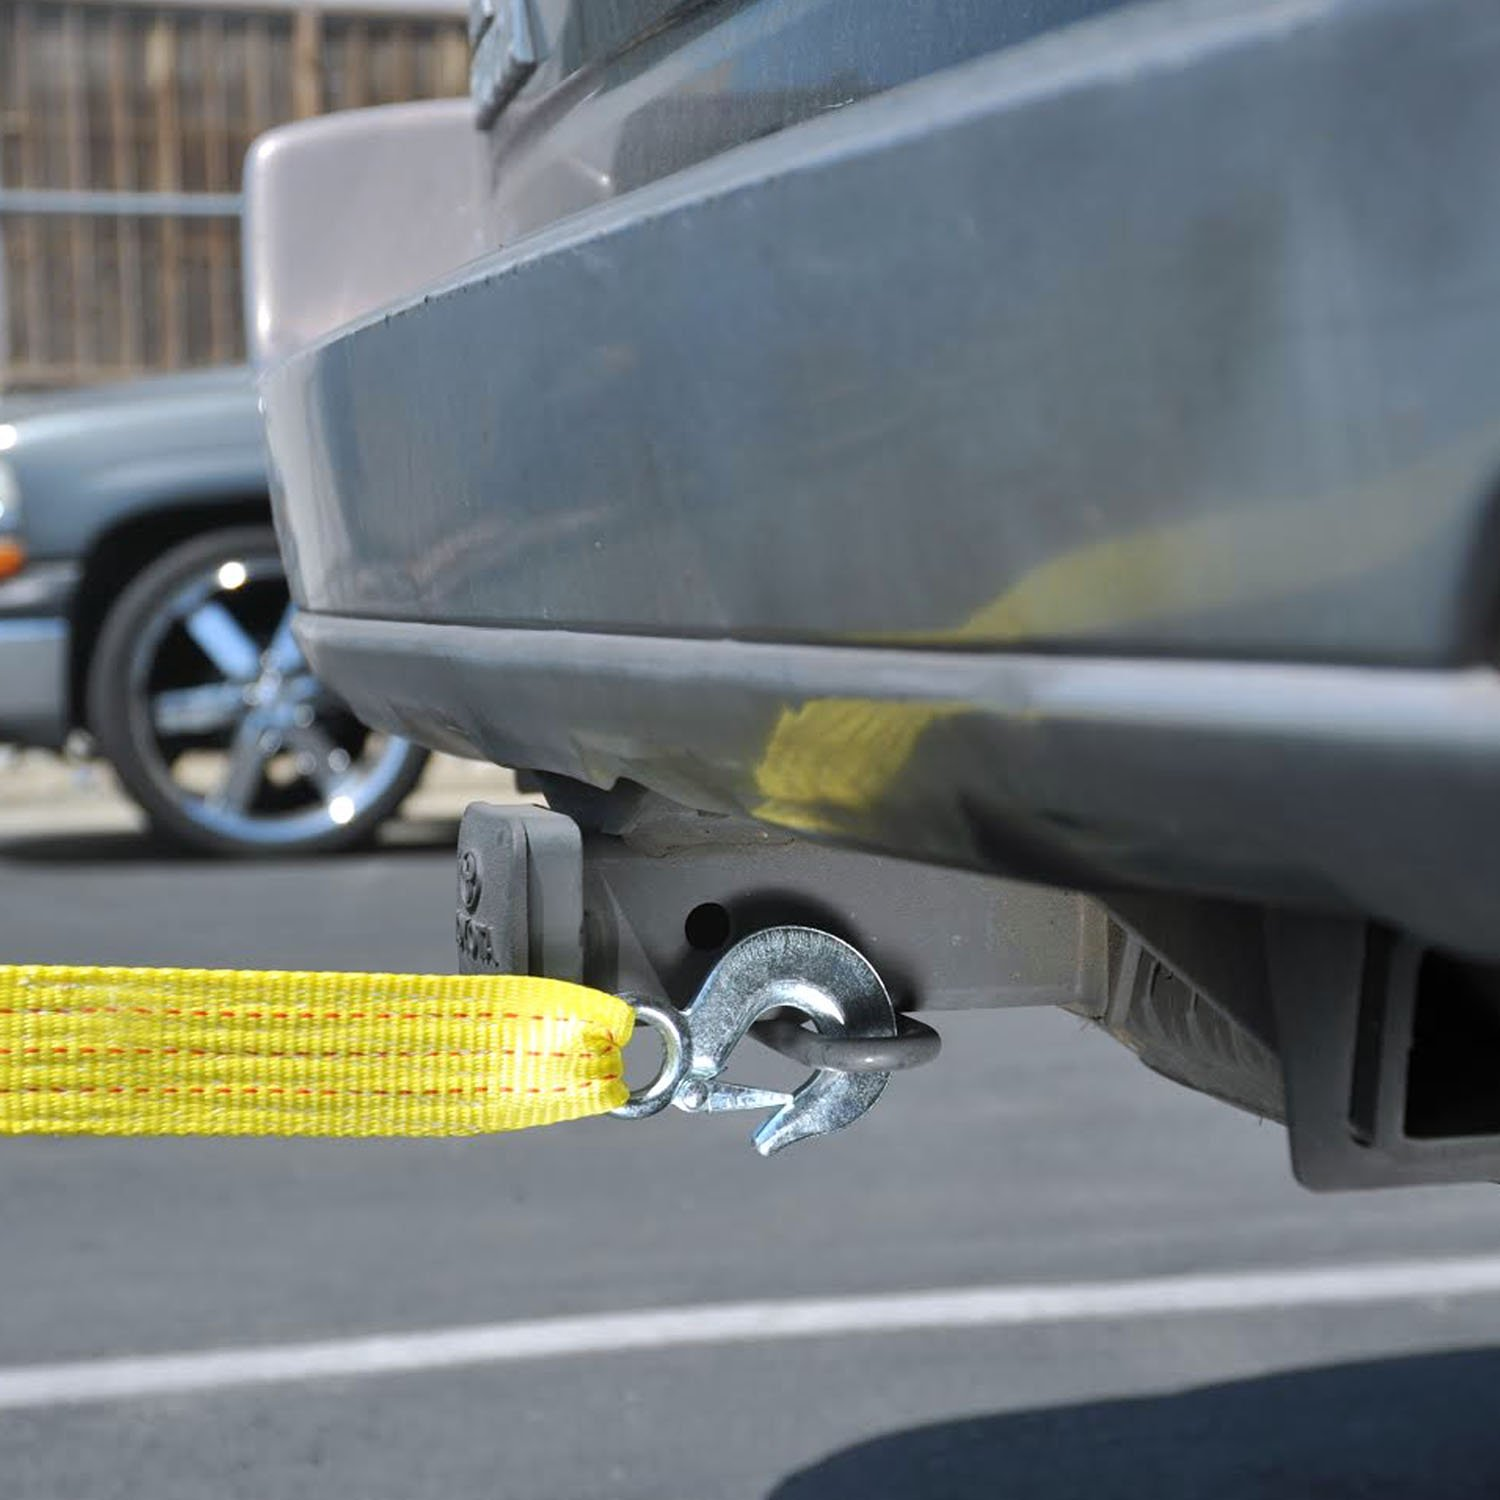 """Polyester 2/"""" x 20/' Neiko 51005A Heavy Duty Tow Strap with Safety Hooks 10,000 LB Capacity"""